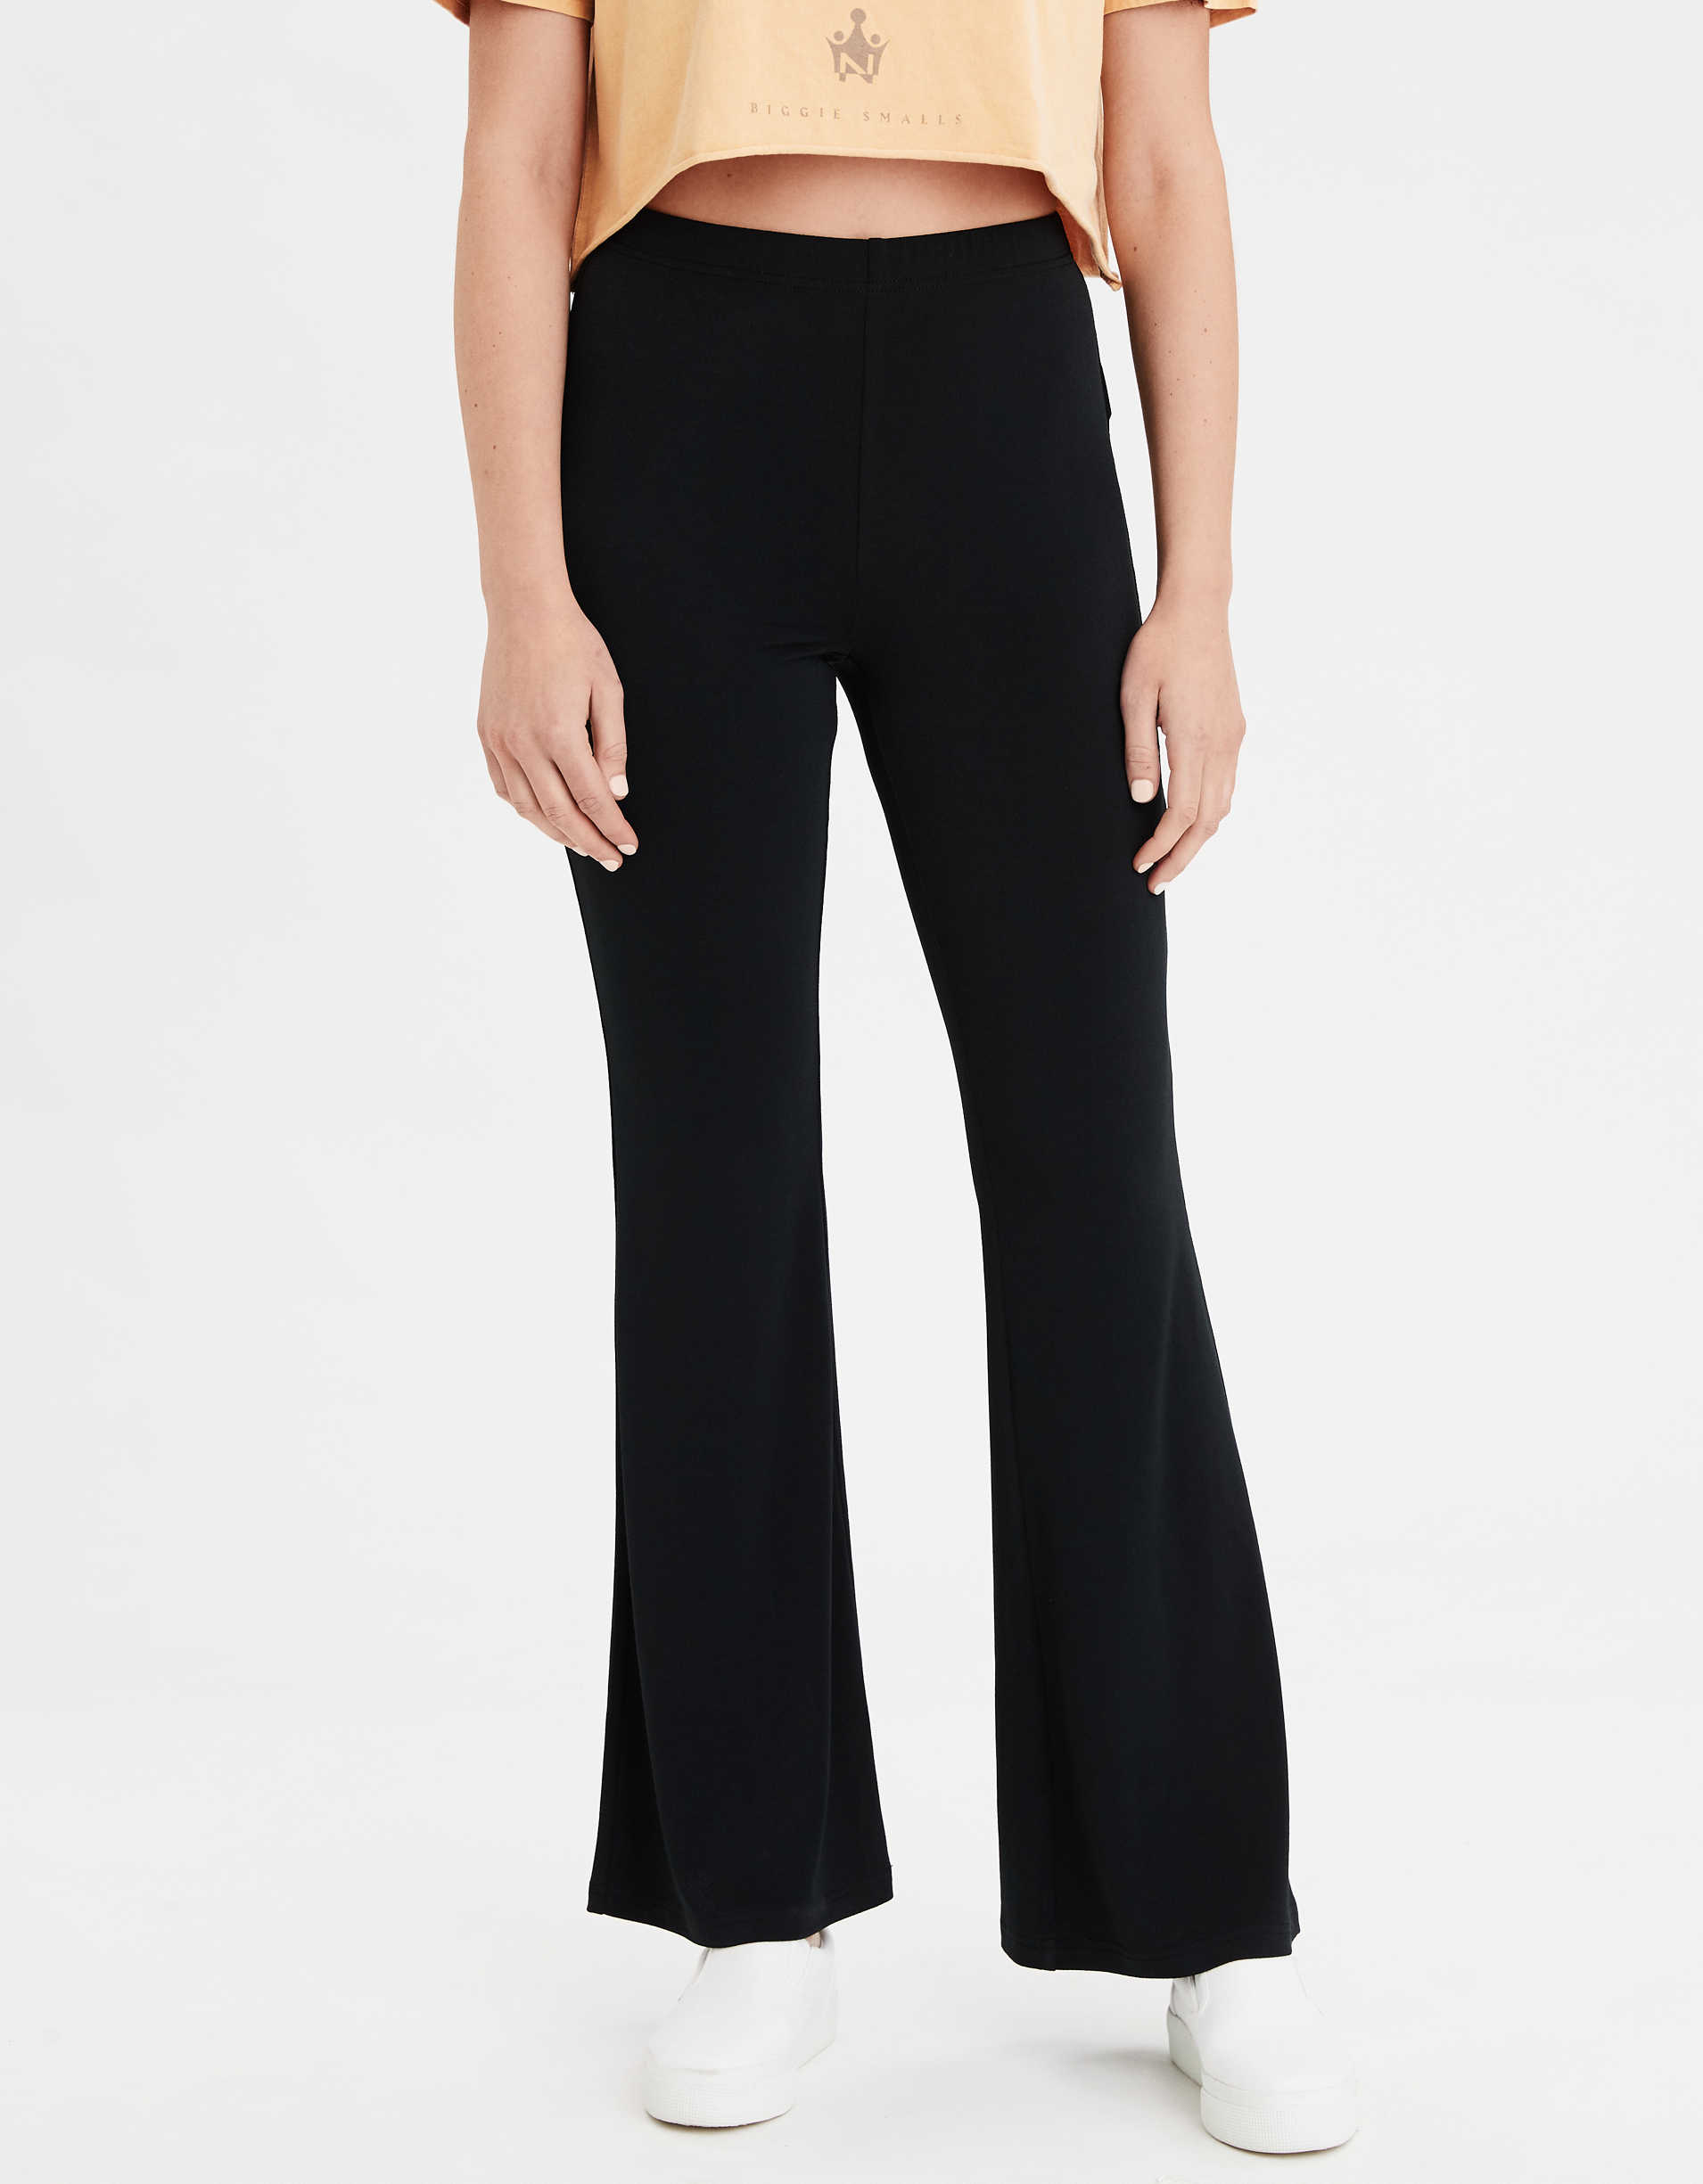 AE Super High-Waisted Flare Legging